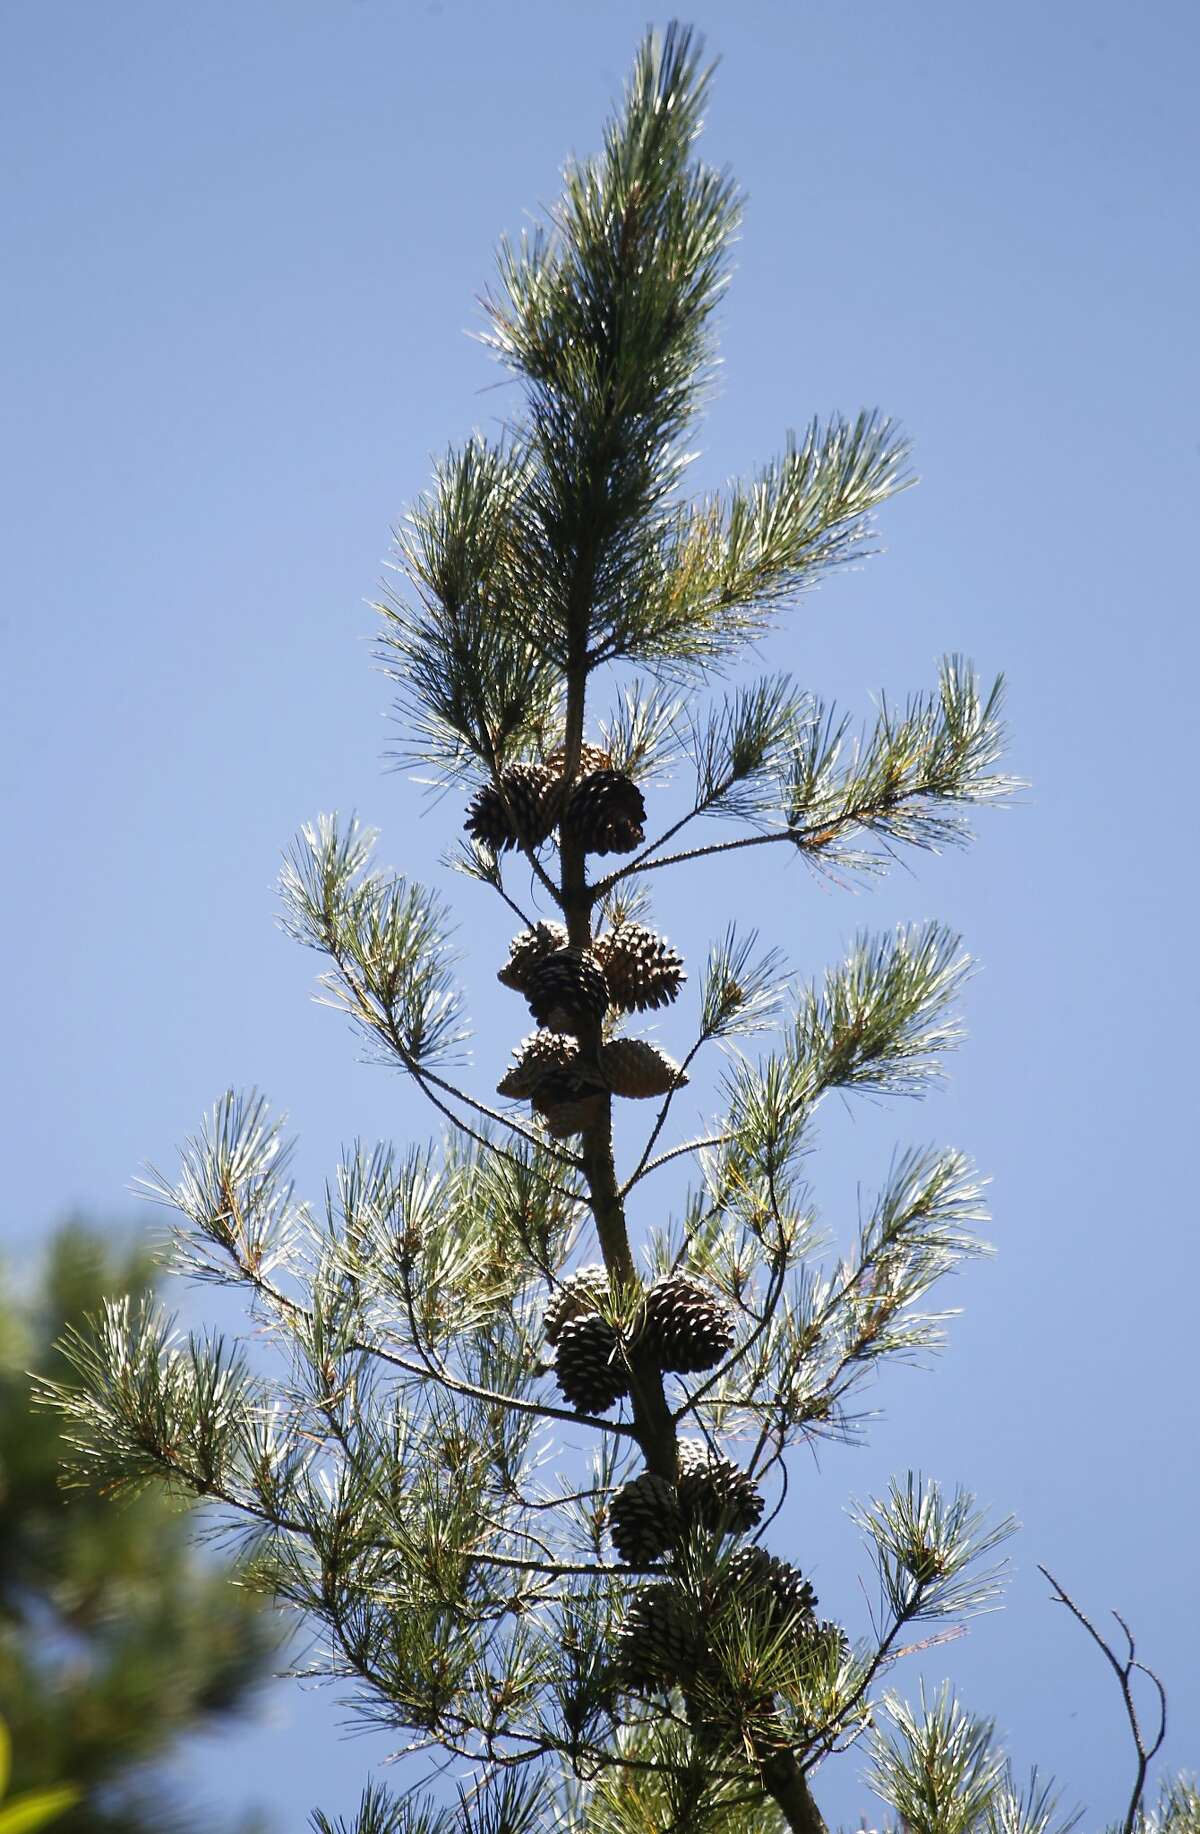 Pine cones hang from a Monterey pine tree at Redwood Regional Park in Oakland, Calif. on Wednesday, July 15, 2015. A controversial plan to remove thousands of trees in the East Bay hills as part of a federally-funded fire mitigation program is being opposed by the Save the East Bay Hills community group and several others.